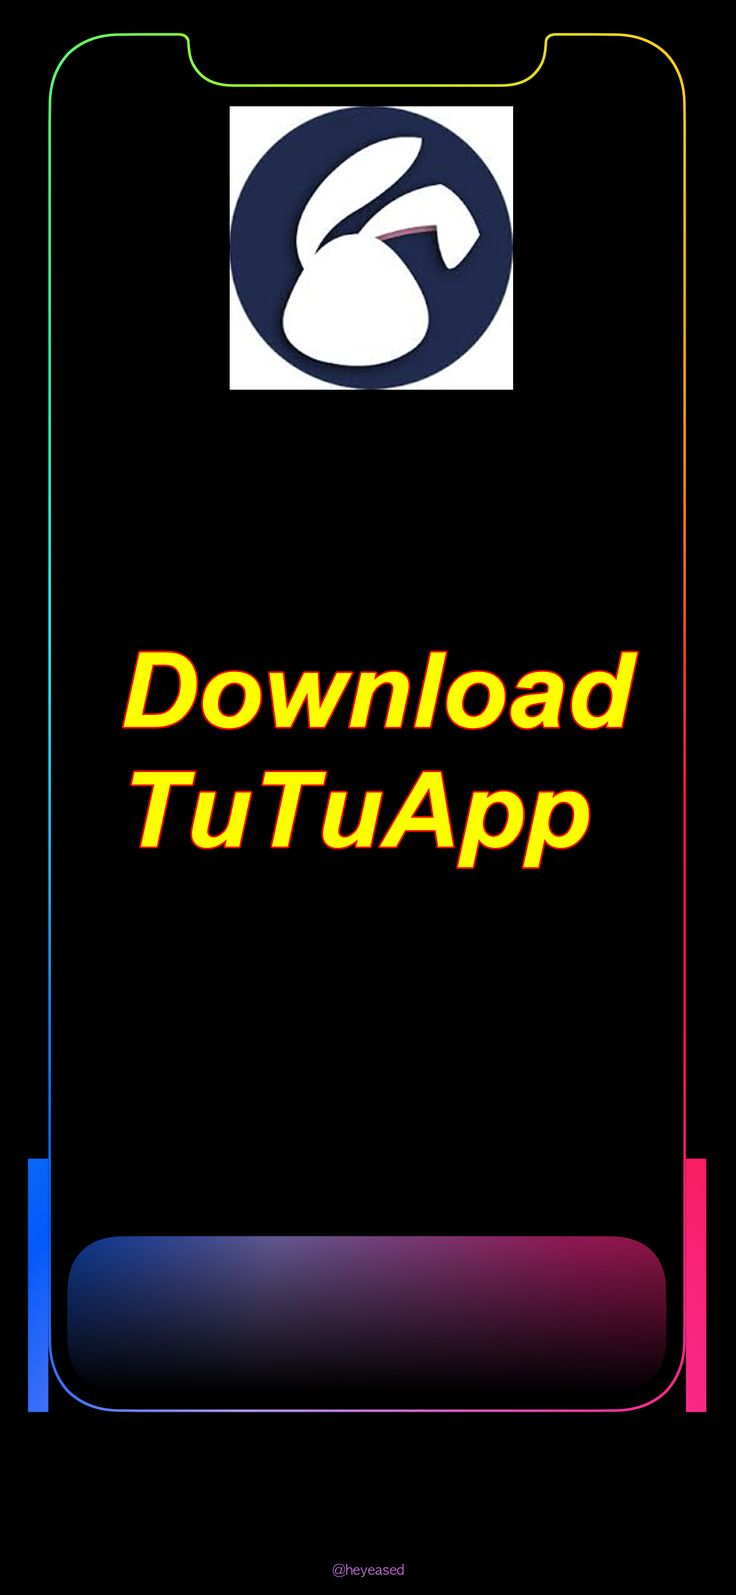 Ready to download and install TuTuApp for your running